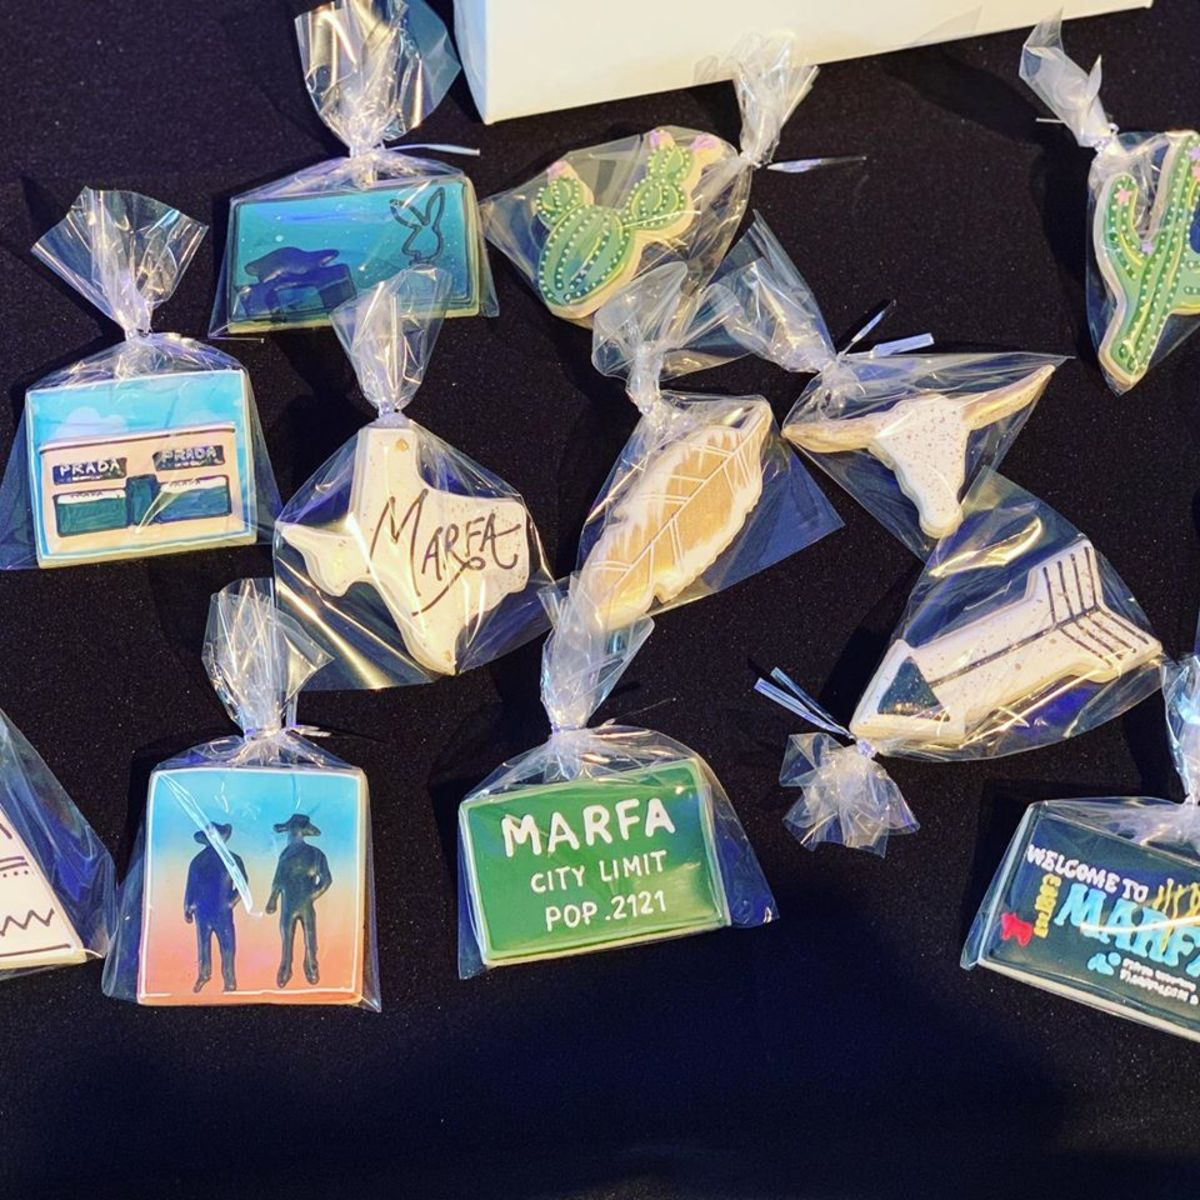 Marfa-themed cookies from Jenna Bakes